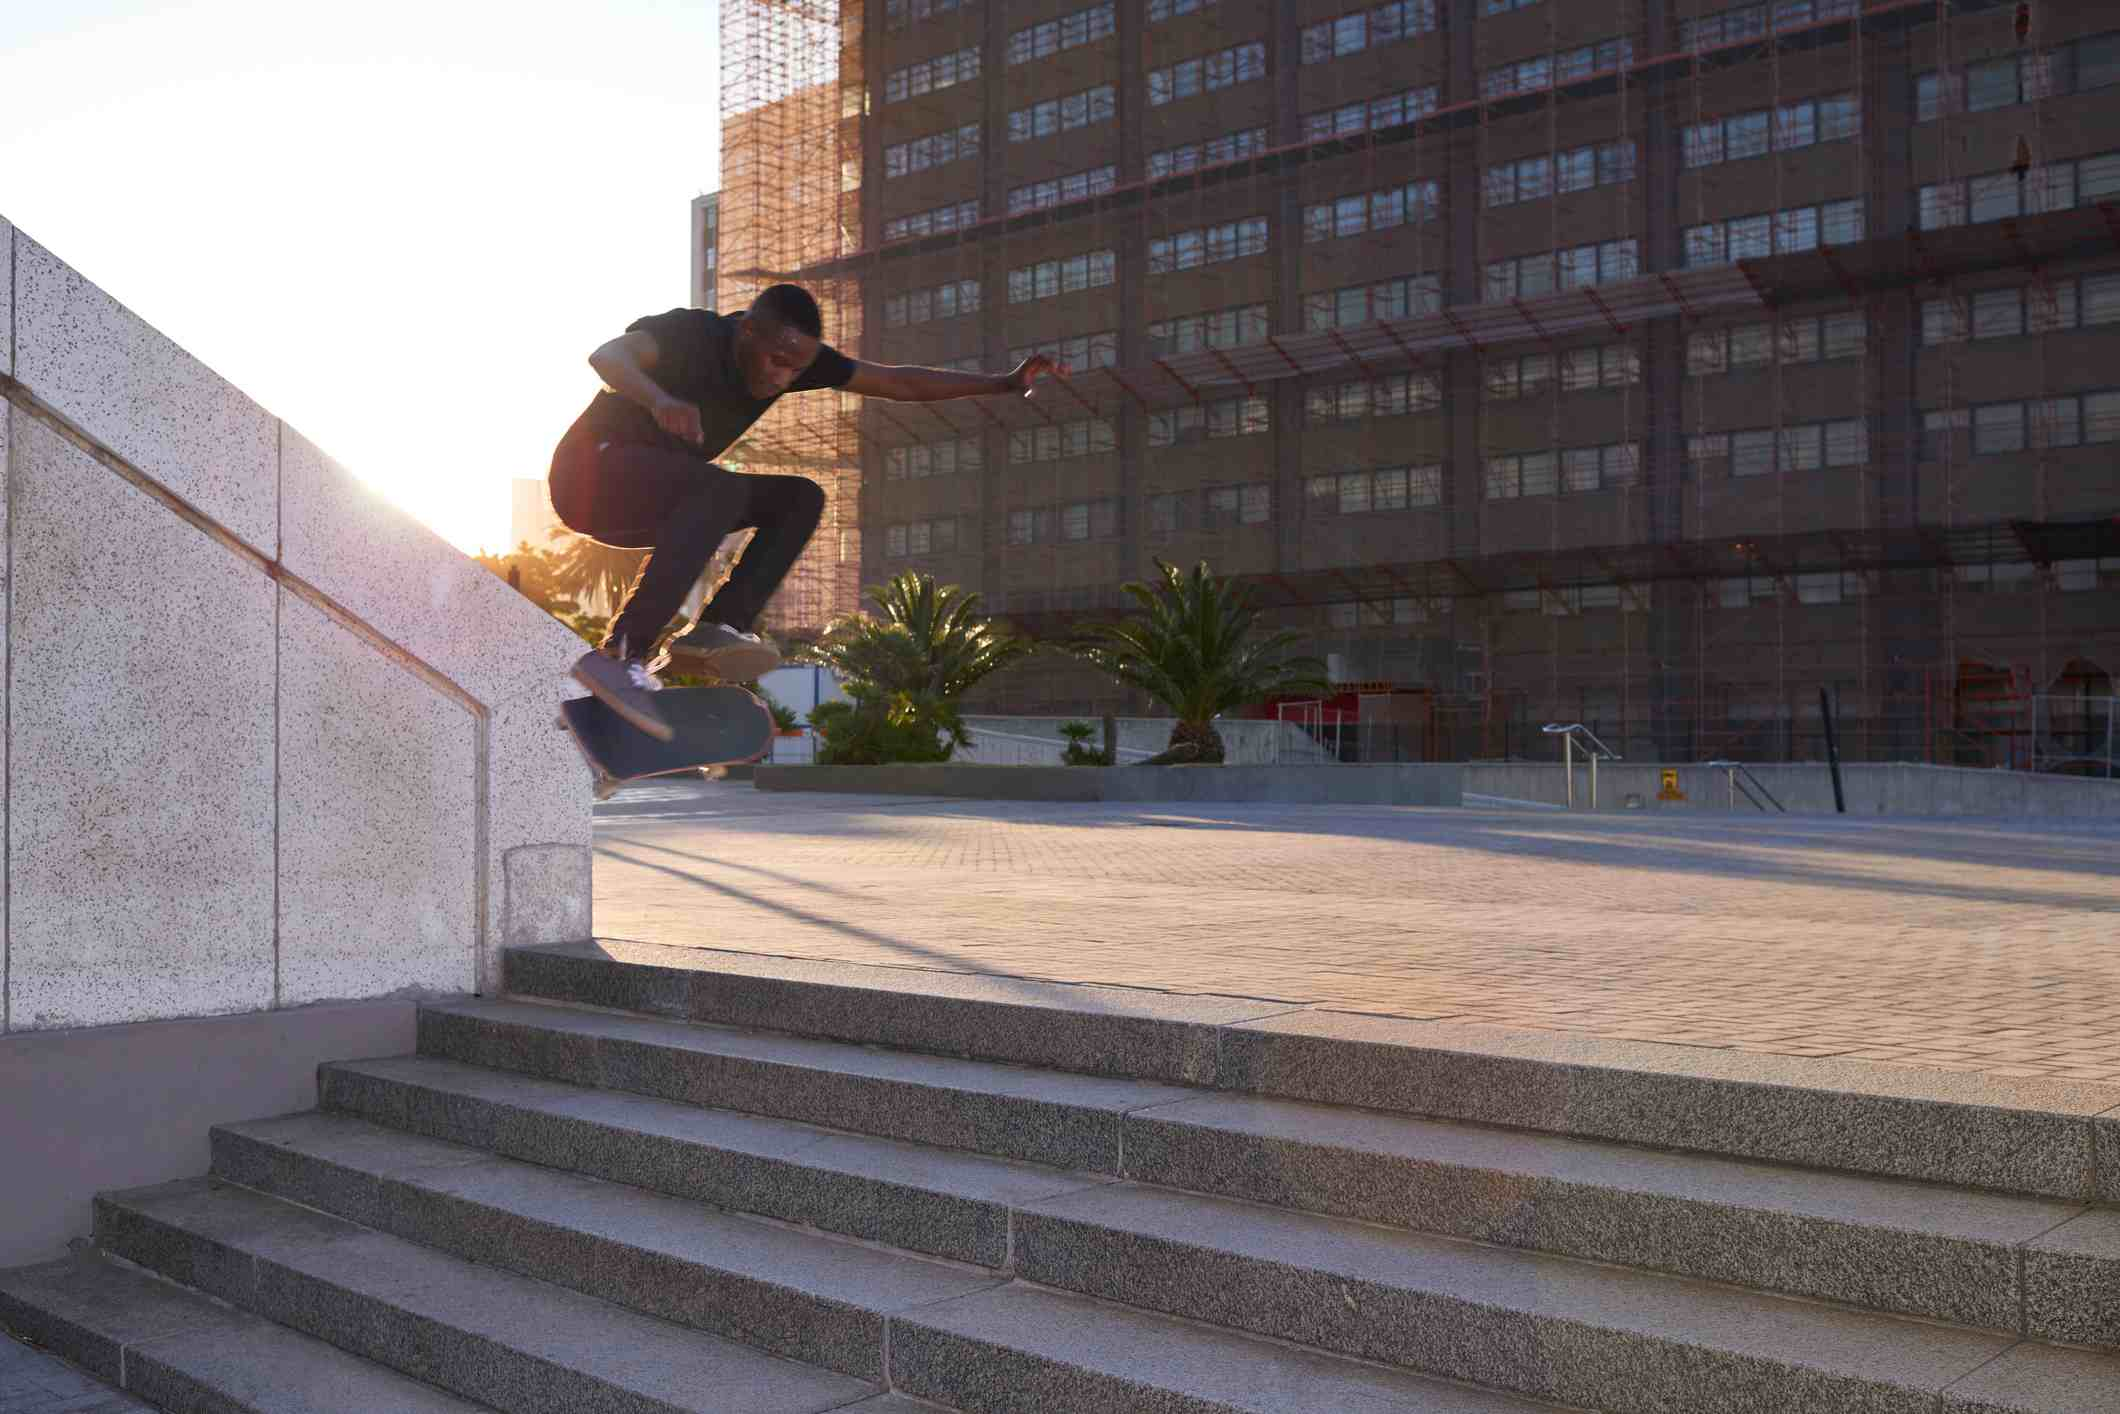 Shot of a young skater skating down a flight of stairs